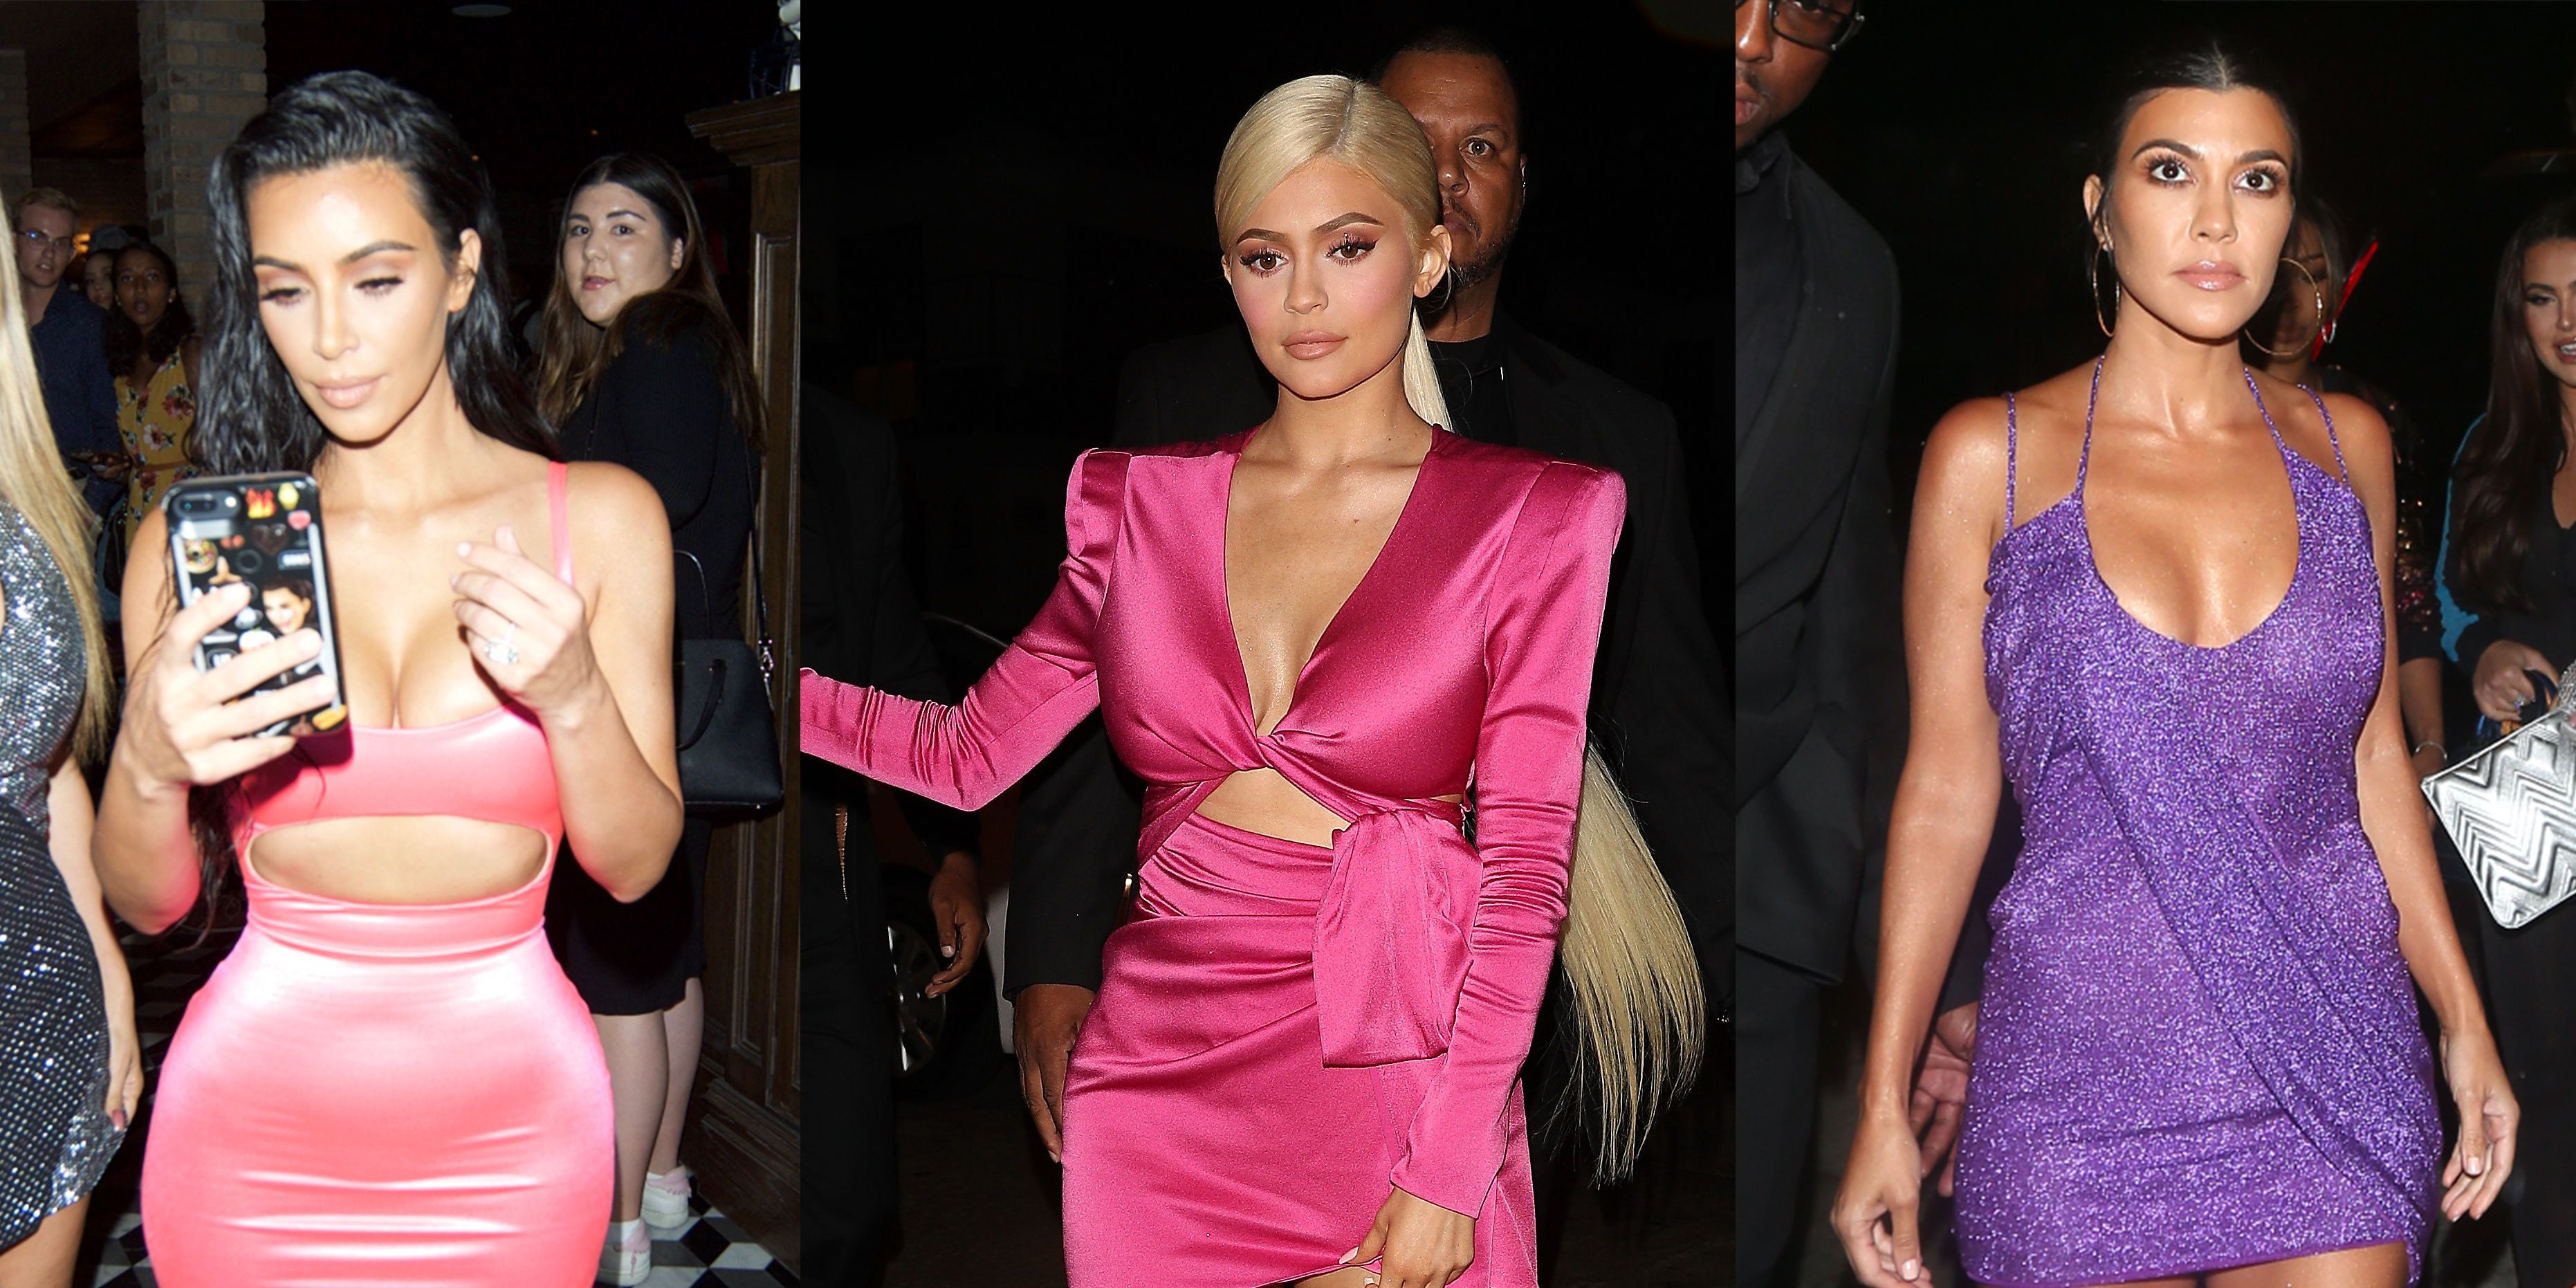 Kylie Jenner's 21st Birthday Party Featured Jaw-Dropping Outfits and a Star-Studded Guest List